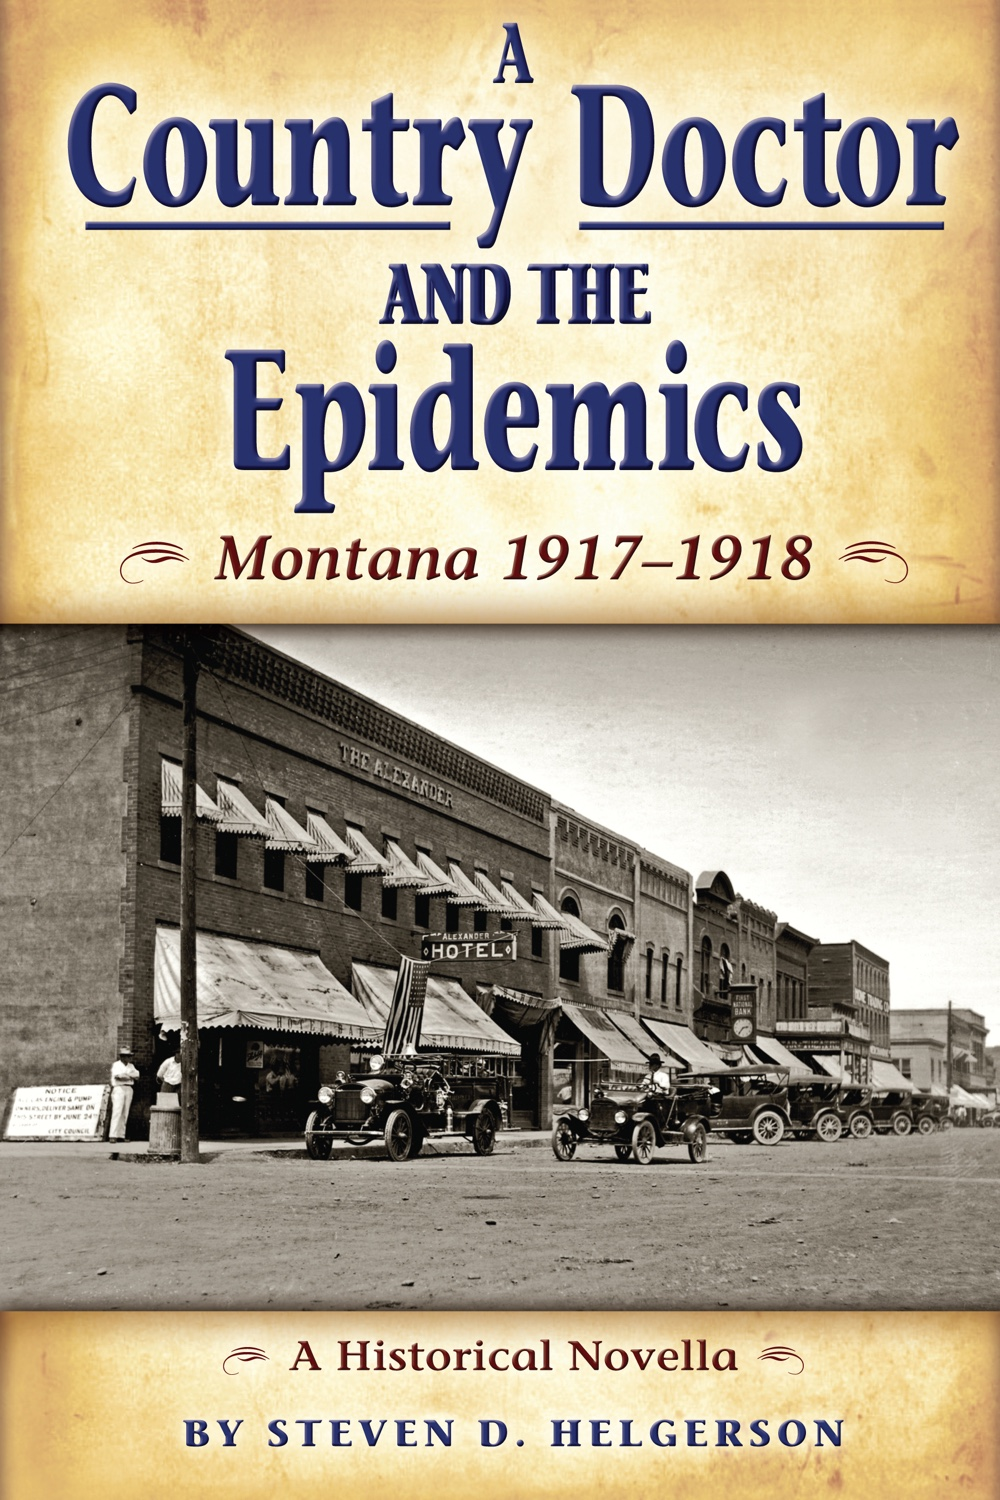 Cover - A Country Doctor and the Epidemics: Montana 1917-1918 by Steven D. Helgerson